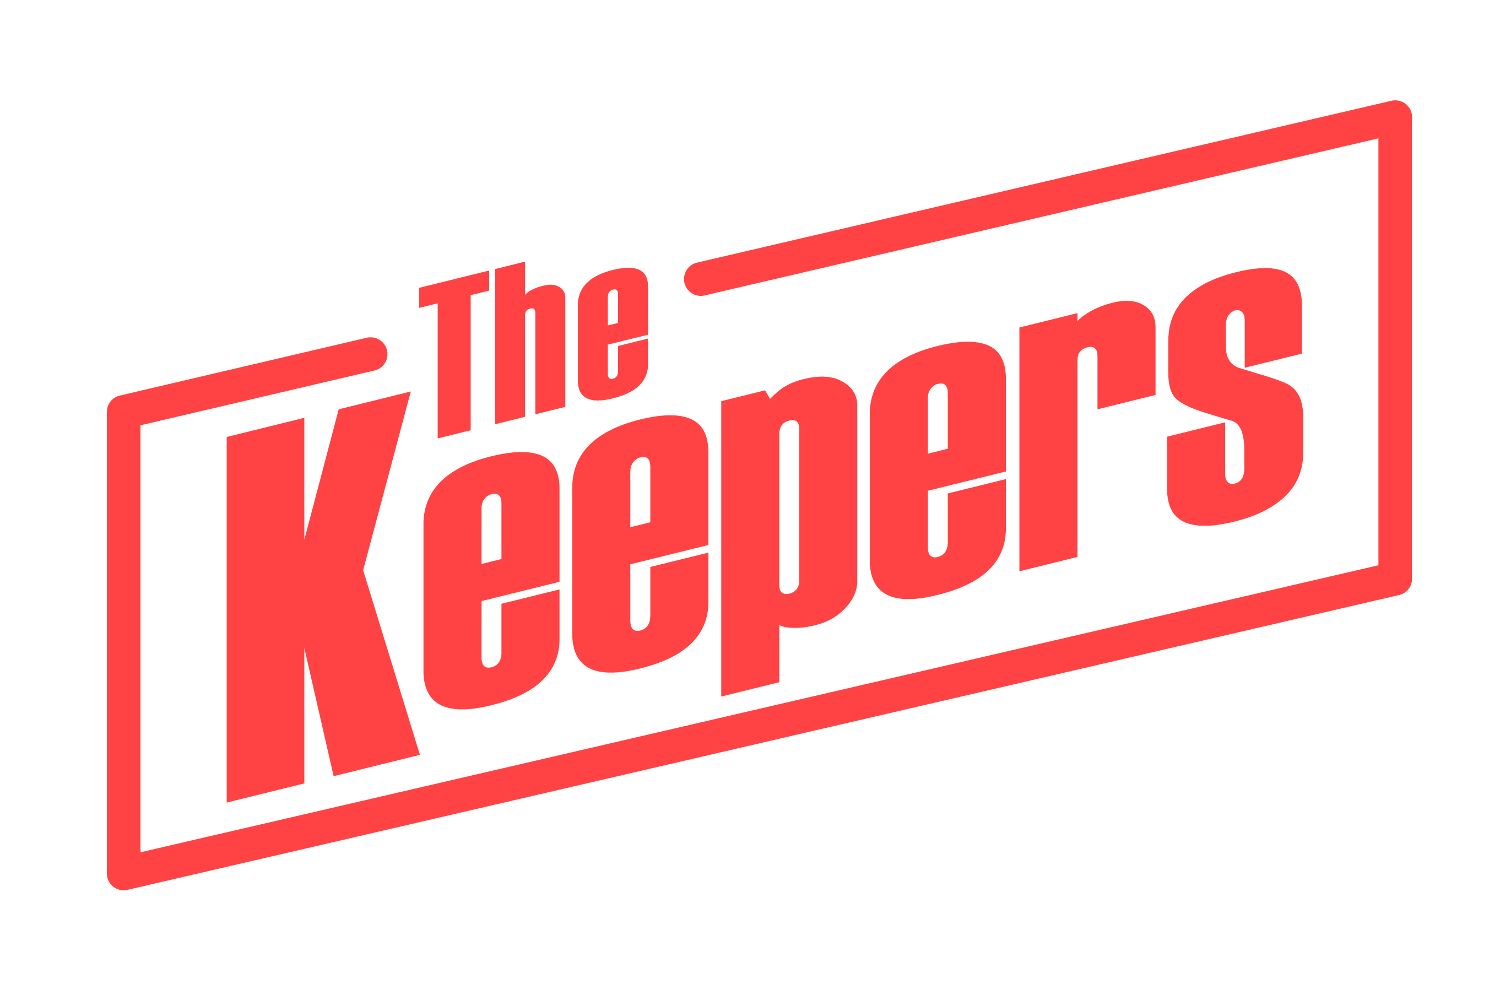 logo_the_keepers_2016.png